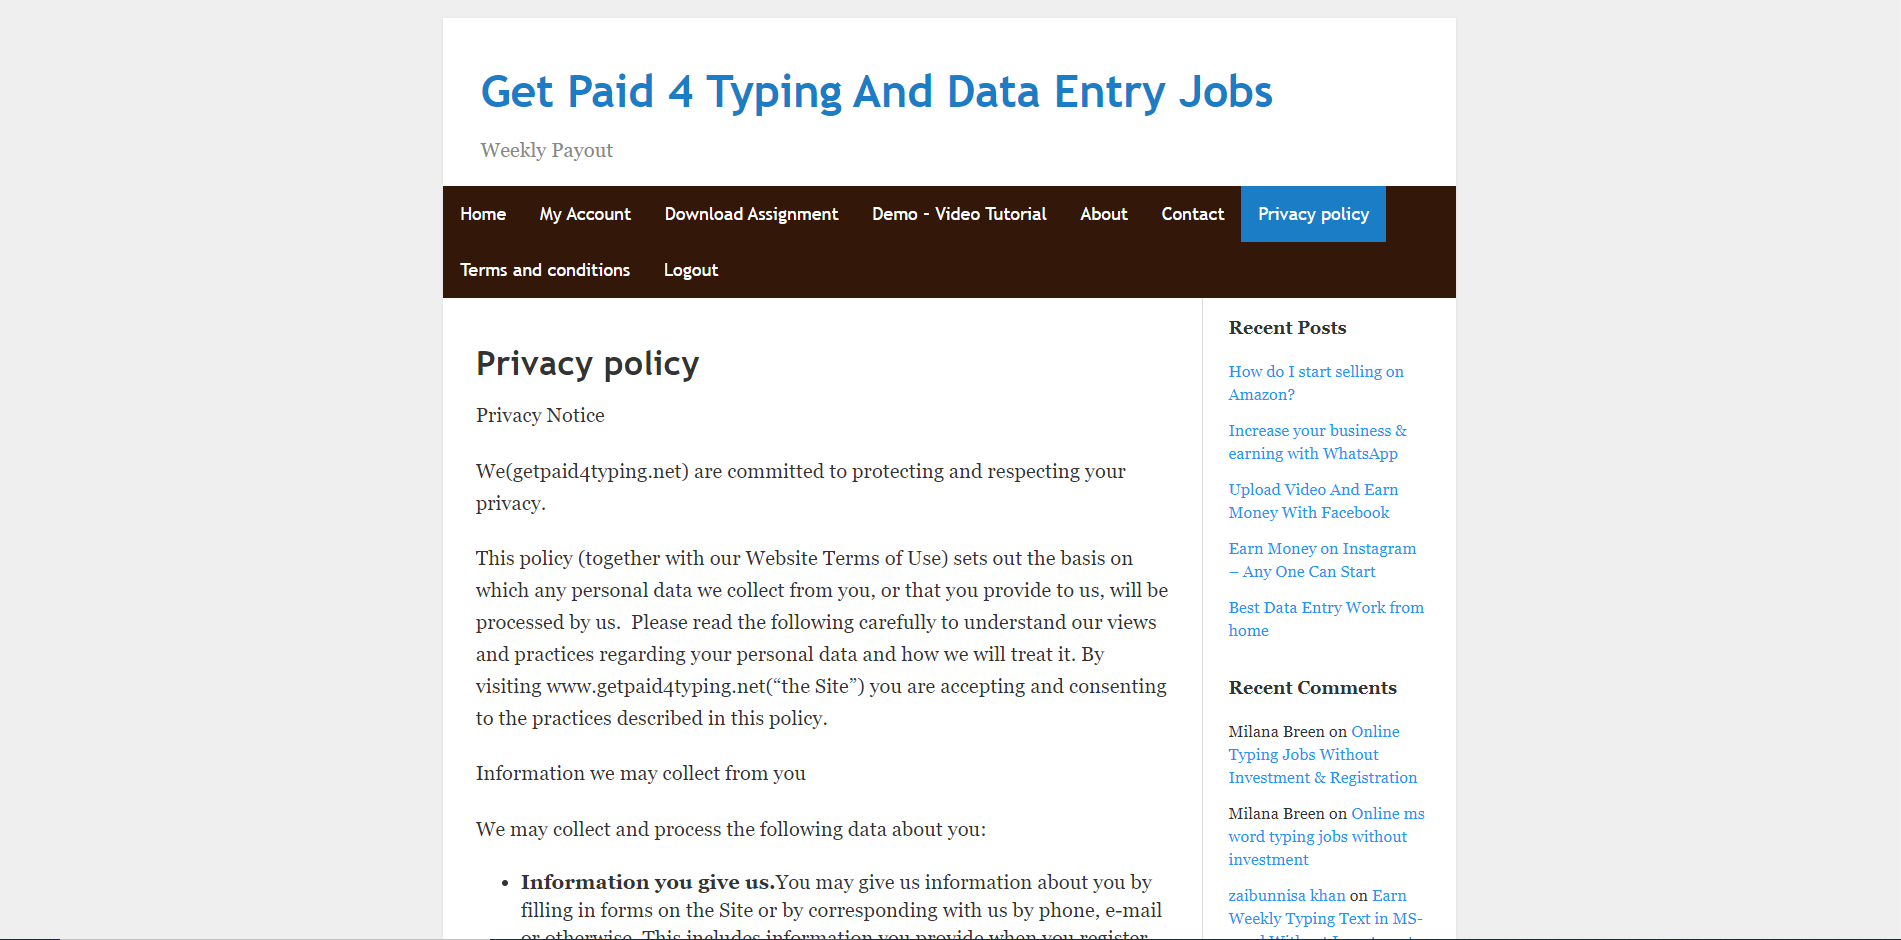 getpaid4typing.net privacy policy